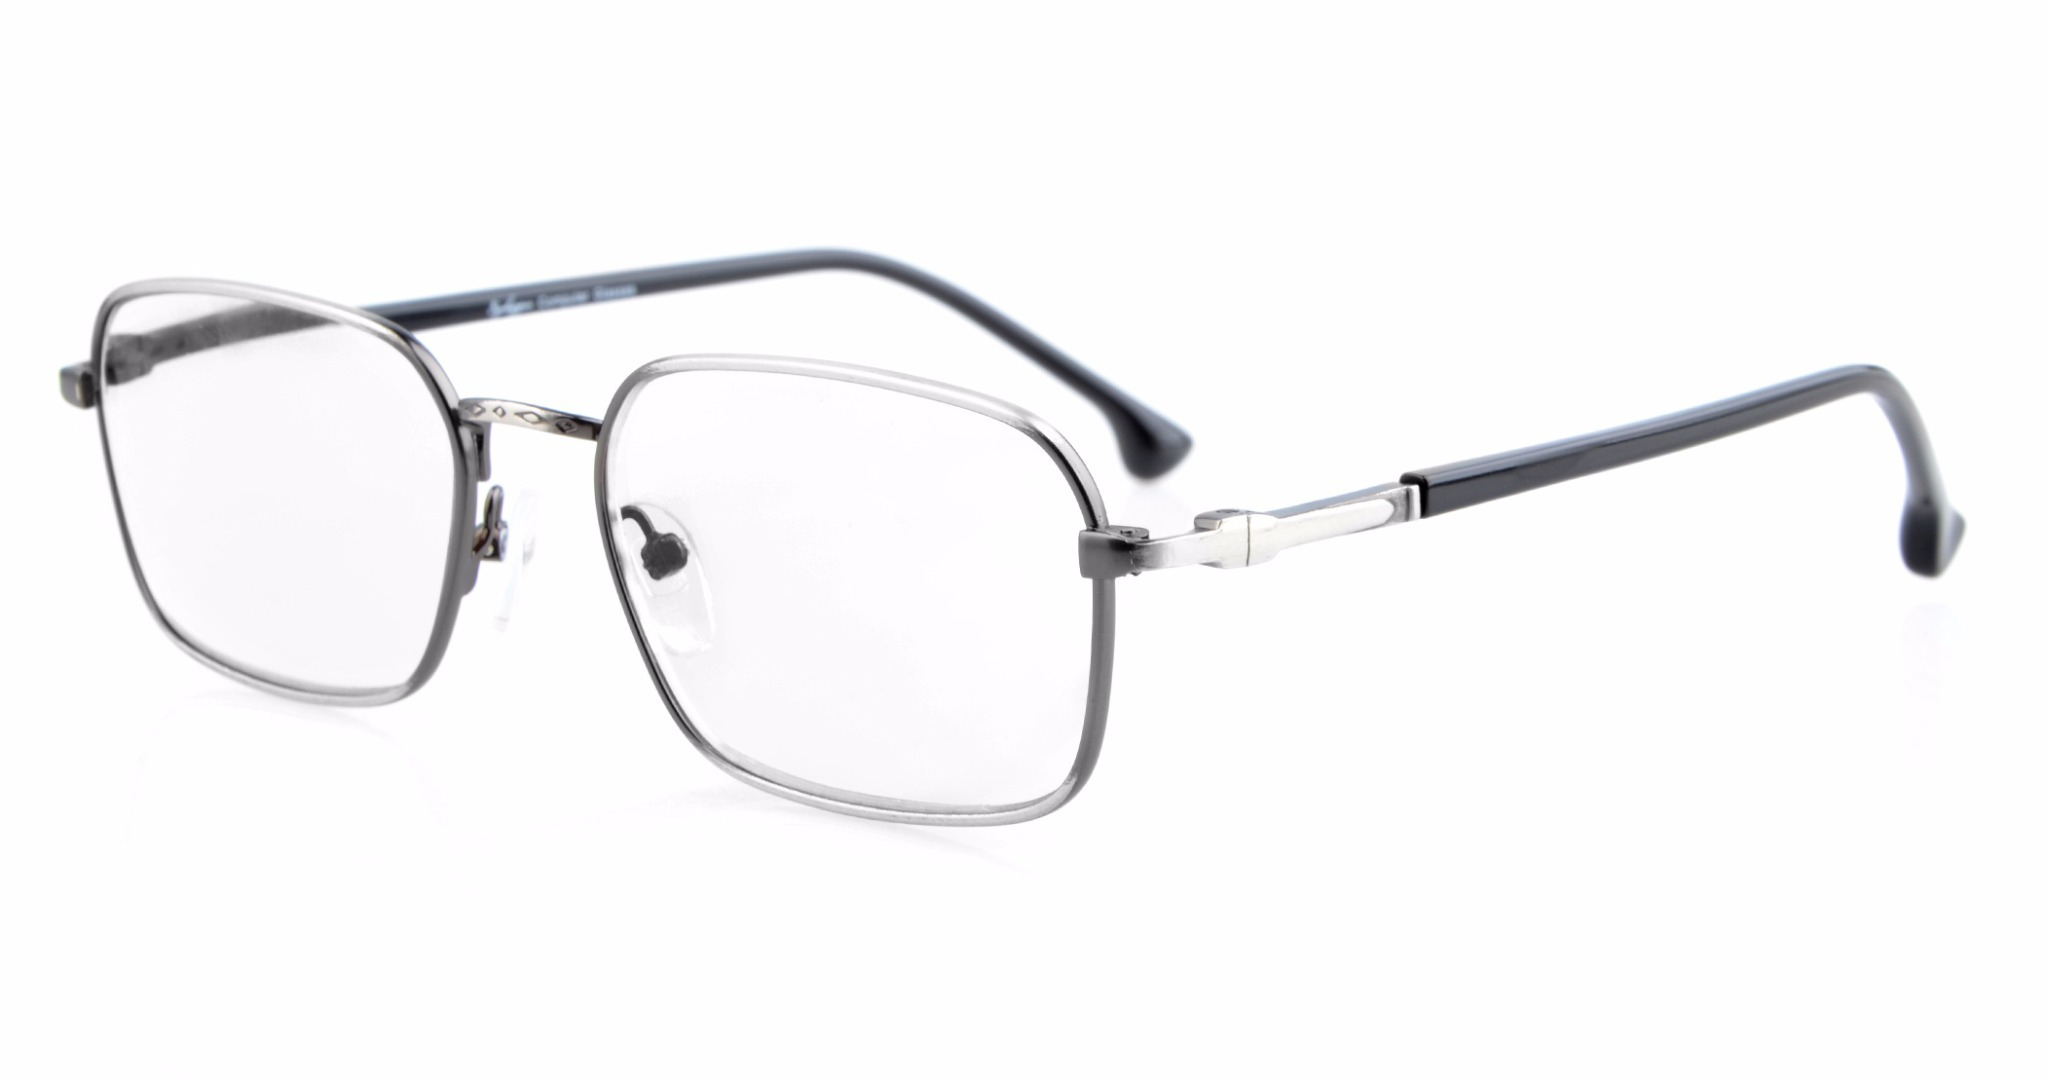 Eyekepper Retro Spring Hinges Glasses Eyeglasses Frame R1617-Anti Silver-0.0